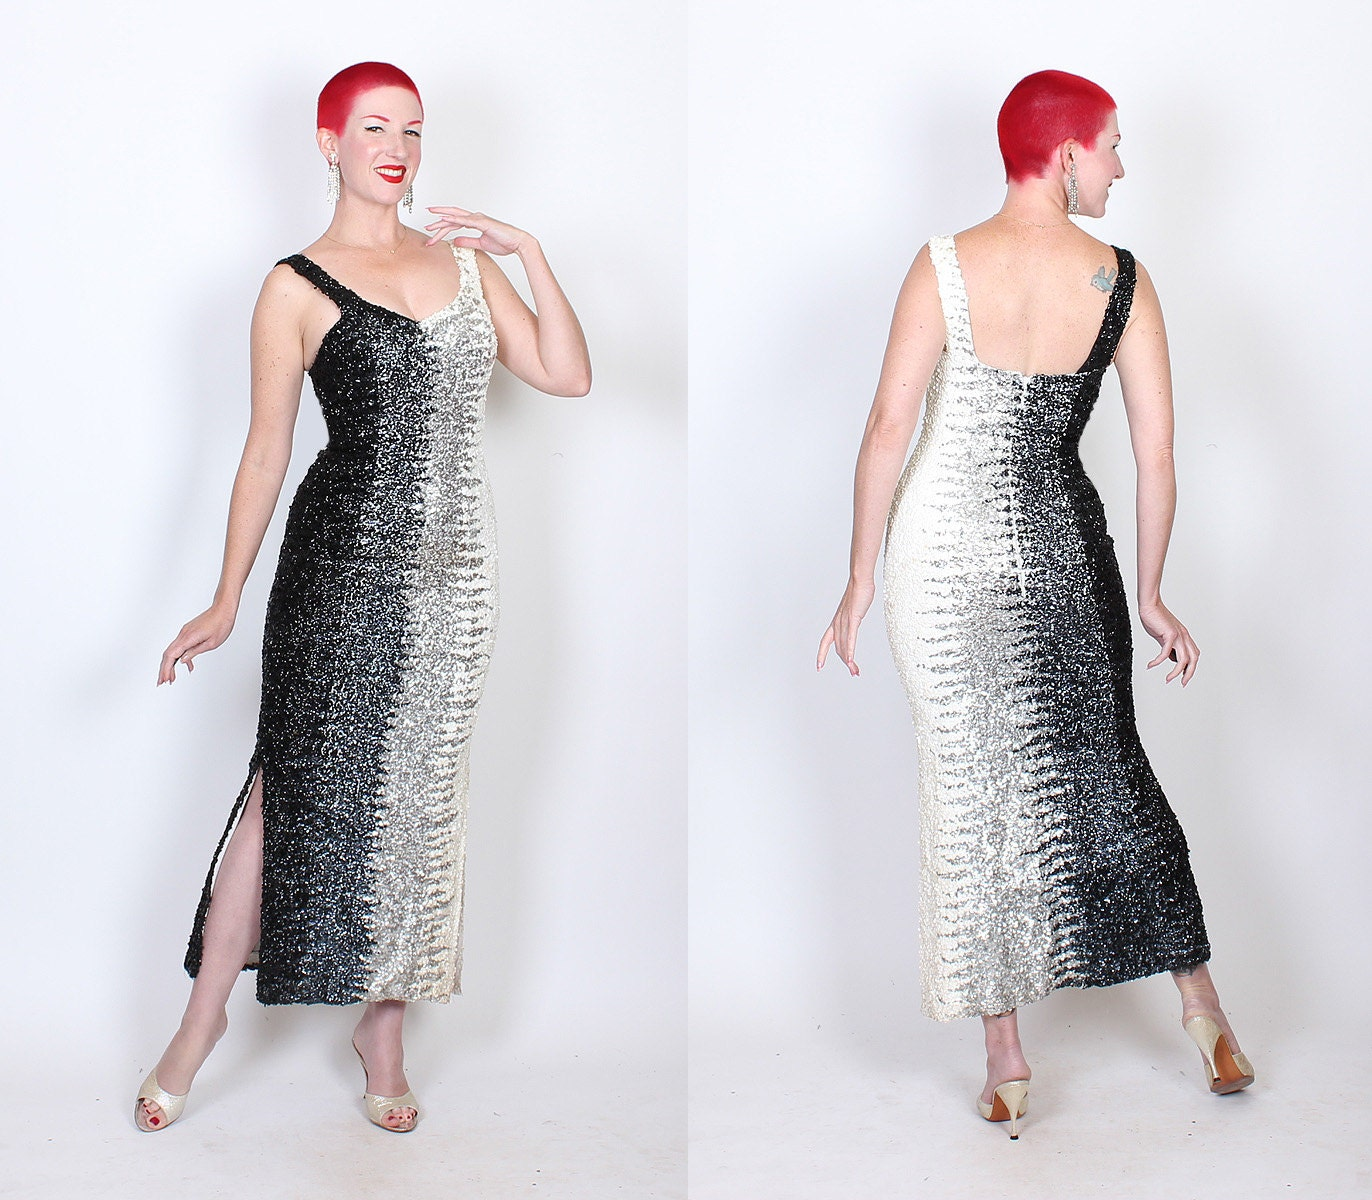 DAZZLING 1950s Fully Hand Sequined Gradated Black to Silver to White Sequins on White Rayon Crepe Extreme Hourglass Evening Gown - Ombre - M